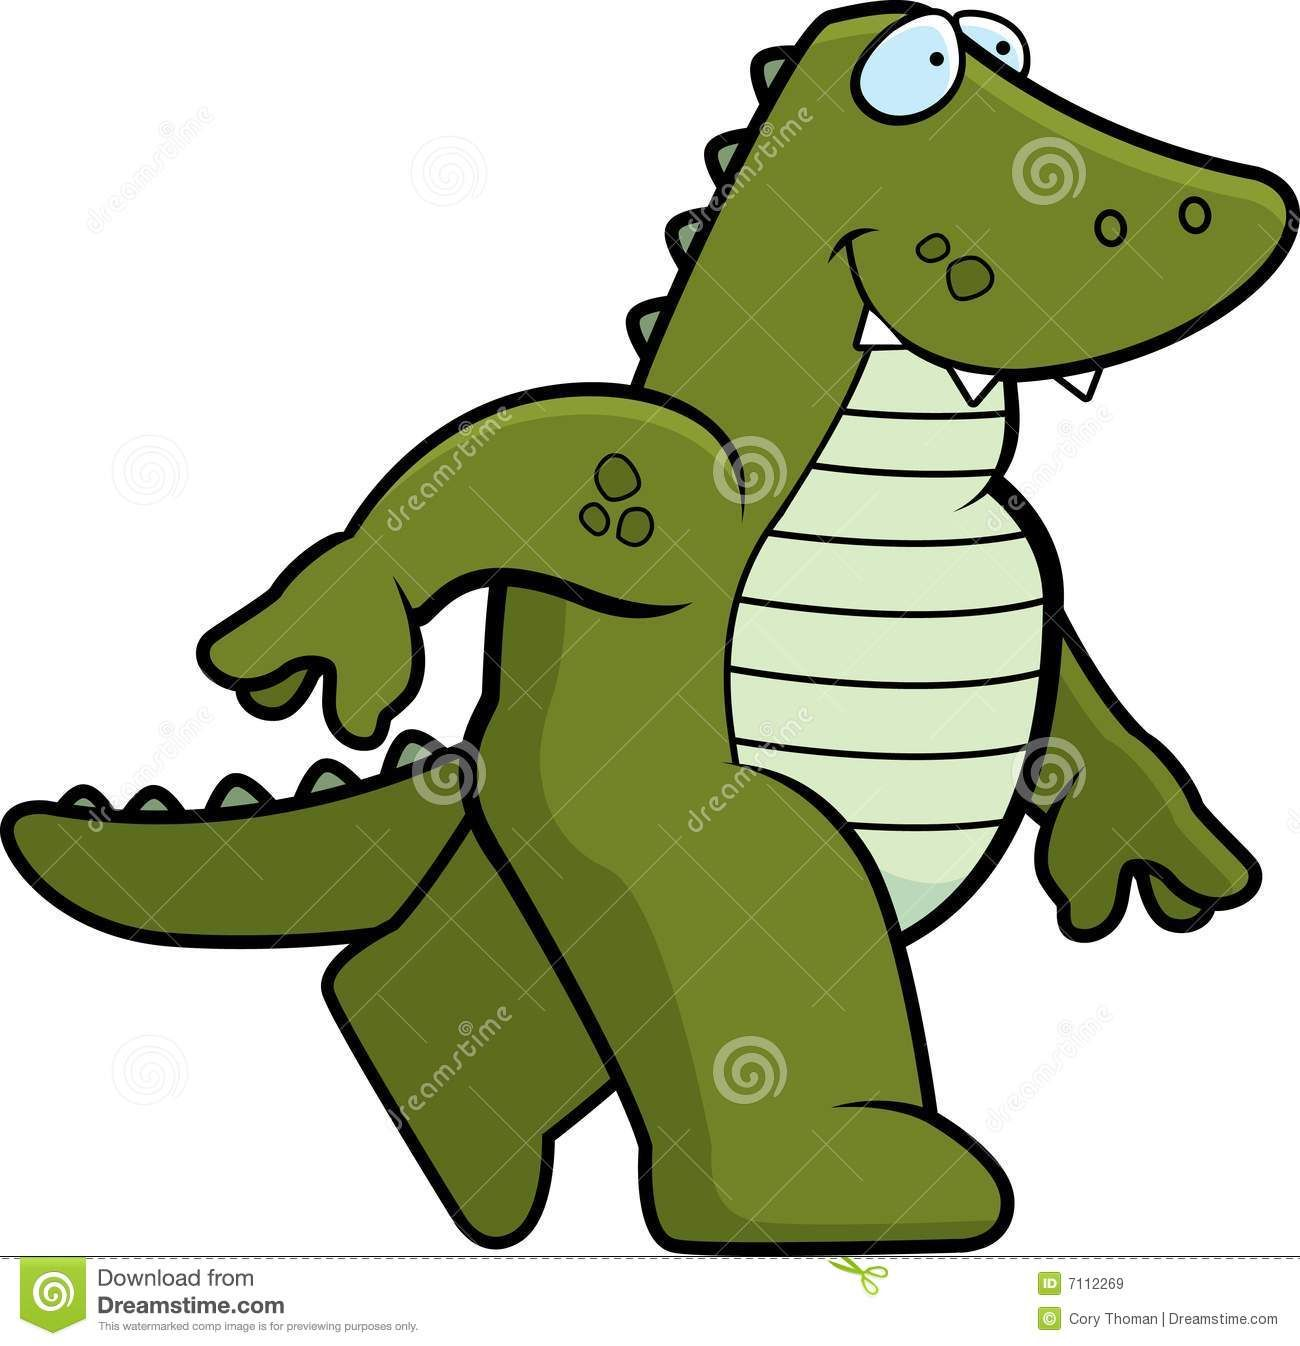 Laughing Cartoon Alligator Clipart - Free Clip Art Images | Gators ...